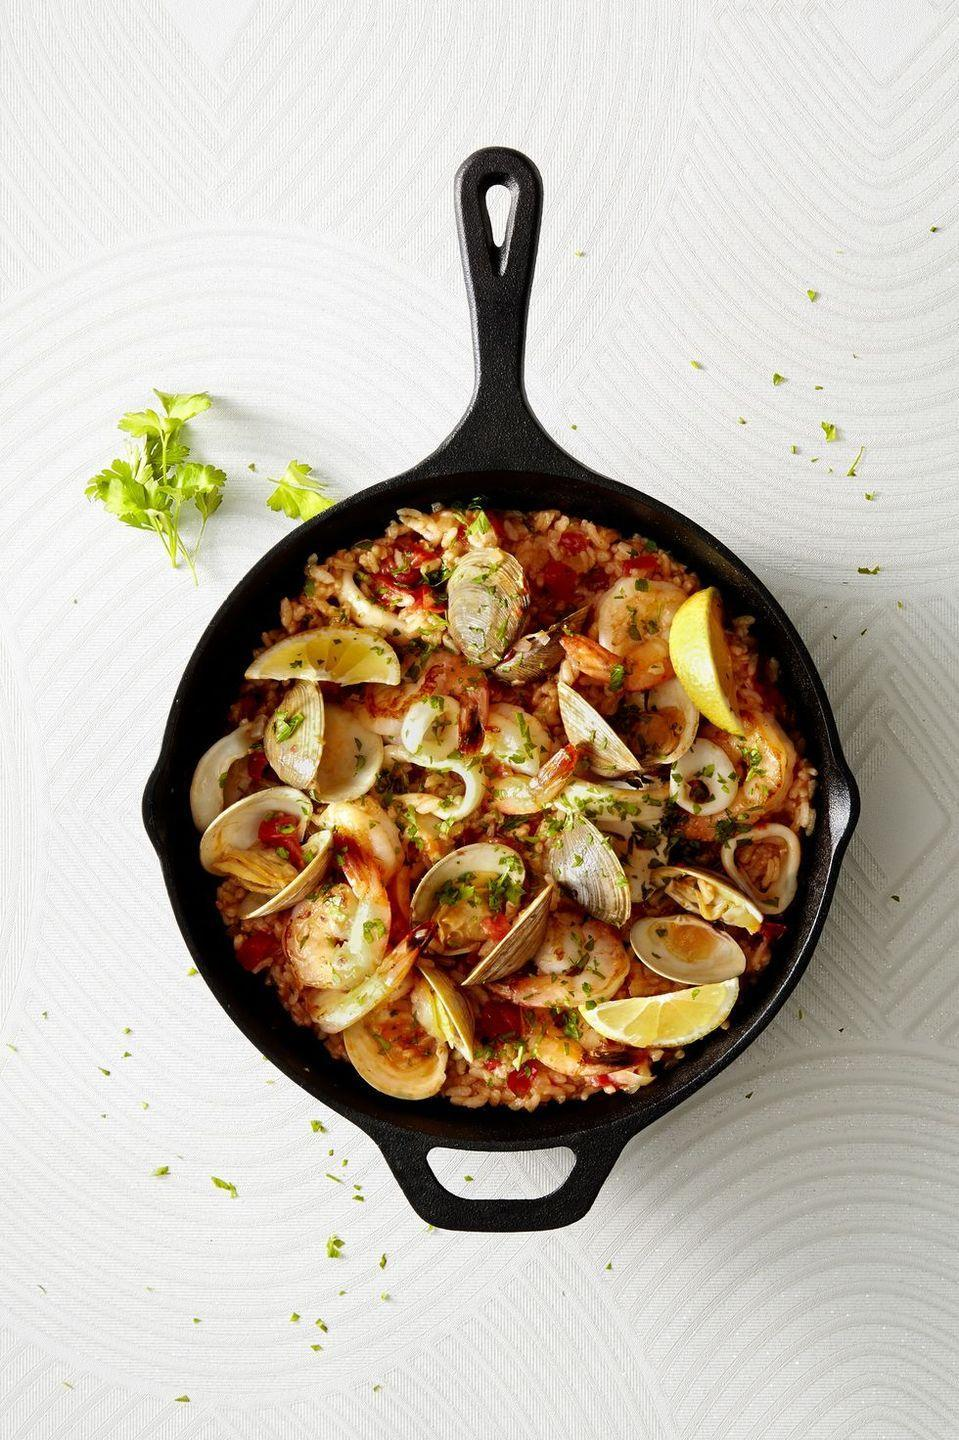 """<p>One of the OG recipes to be made in a single pan, you'll throw in a bunch of fresh seafood you've picked up from the fish monger atop a bed of rice. After a slow steam, the flavors soak into the rice for a delicious (and special!) coastal Christmas dinner. </p><p><em><a href=""""https://www.goodhousekeeping.com/food-recipes/a42820/easiest-ever-paella-recipe/"""" rel=""""nofollow noopener"""" target=""""_blank"""" data-ylk=""""slk:Get the recipe for Easiest-Ever Paella »"""" class=""""link rapid-noclick-resp"""">Get the recipe for Easiest-Ever Paella »</a></em></p>"""